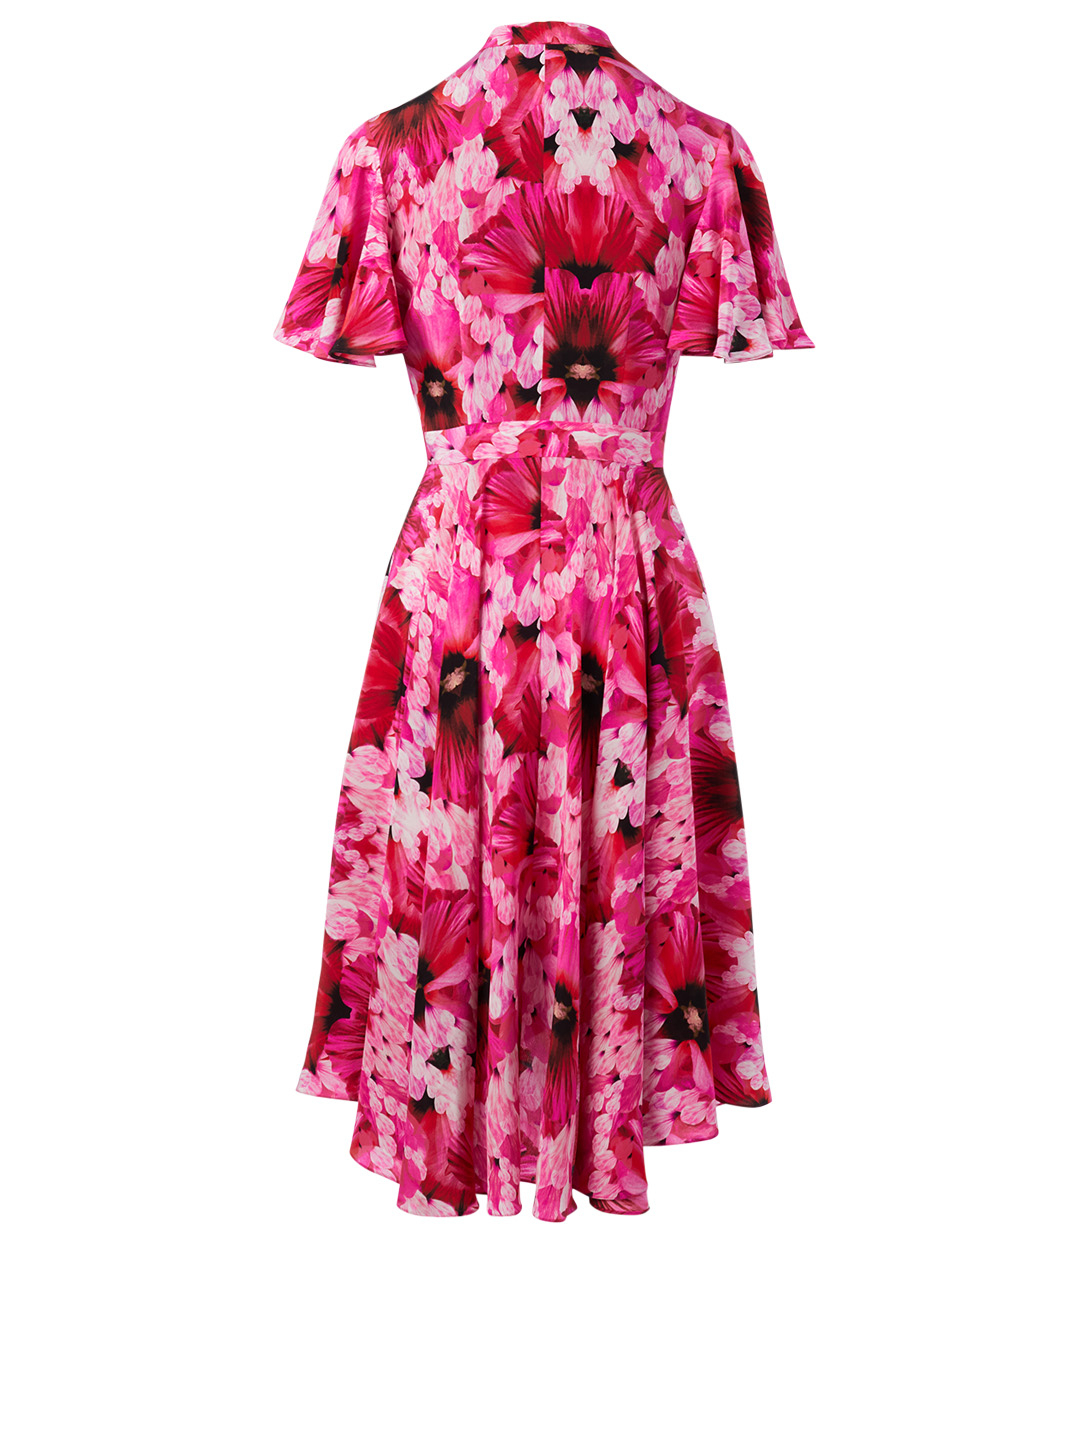 ALEXANDER MCQUEEN Silk Midi Dress In Floral Print Women's Pink